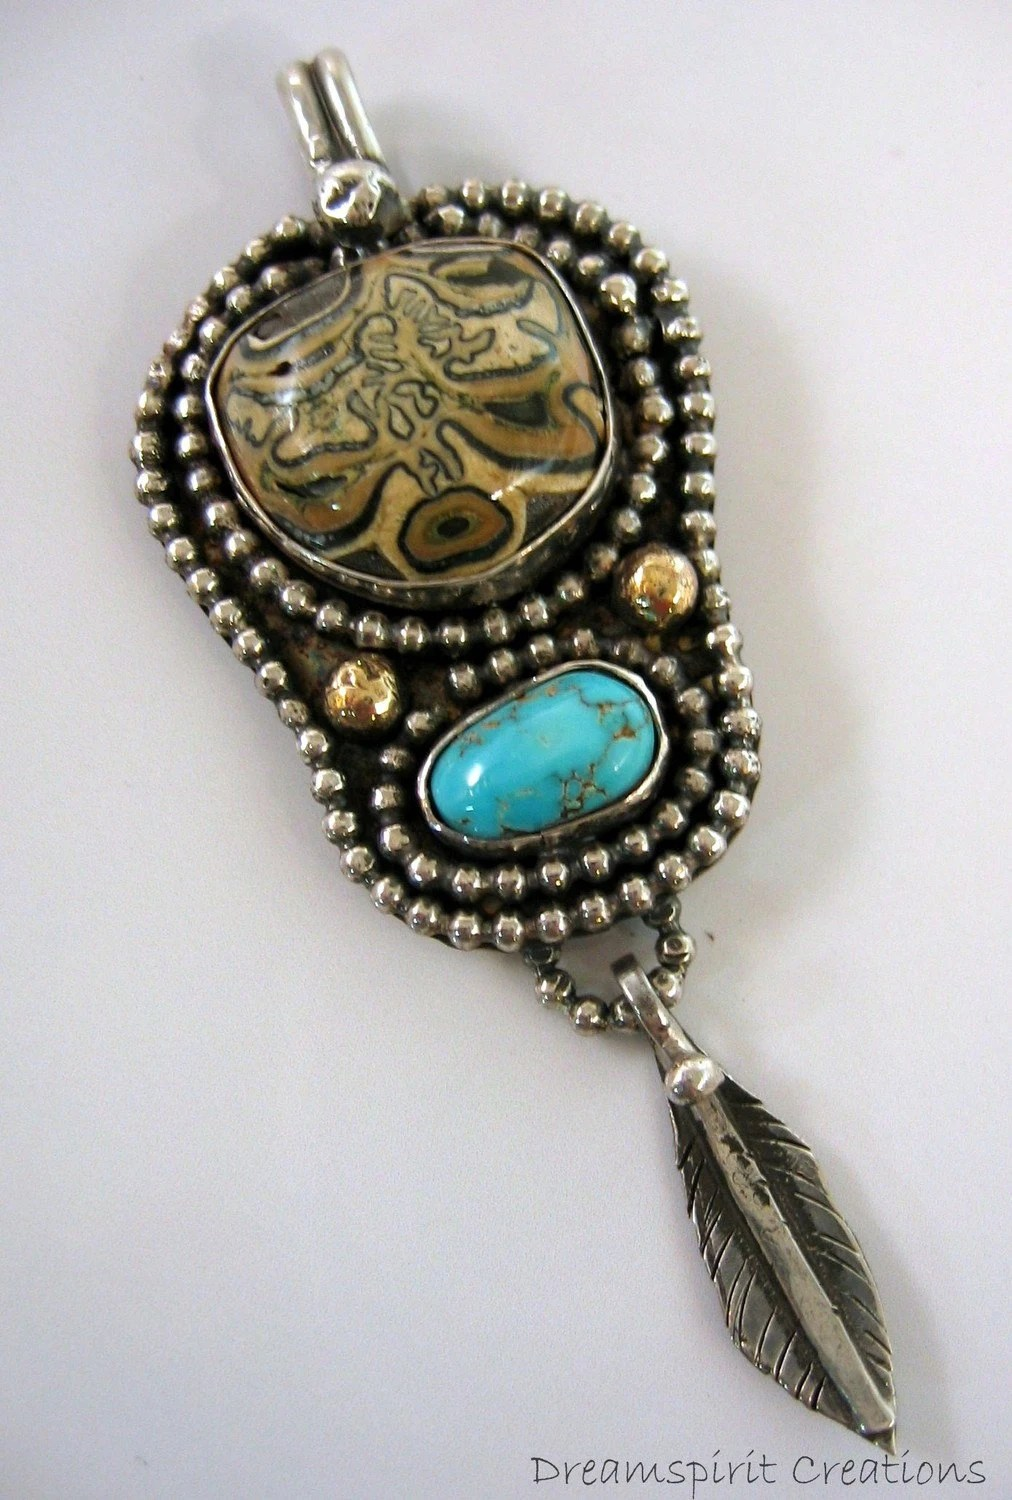 Sterling Silver Pendant with Petrified Horse Tooth and Turquoise Stones